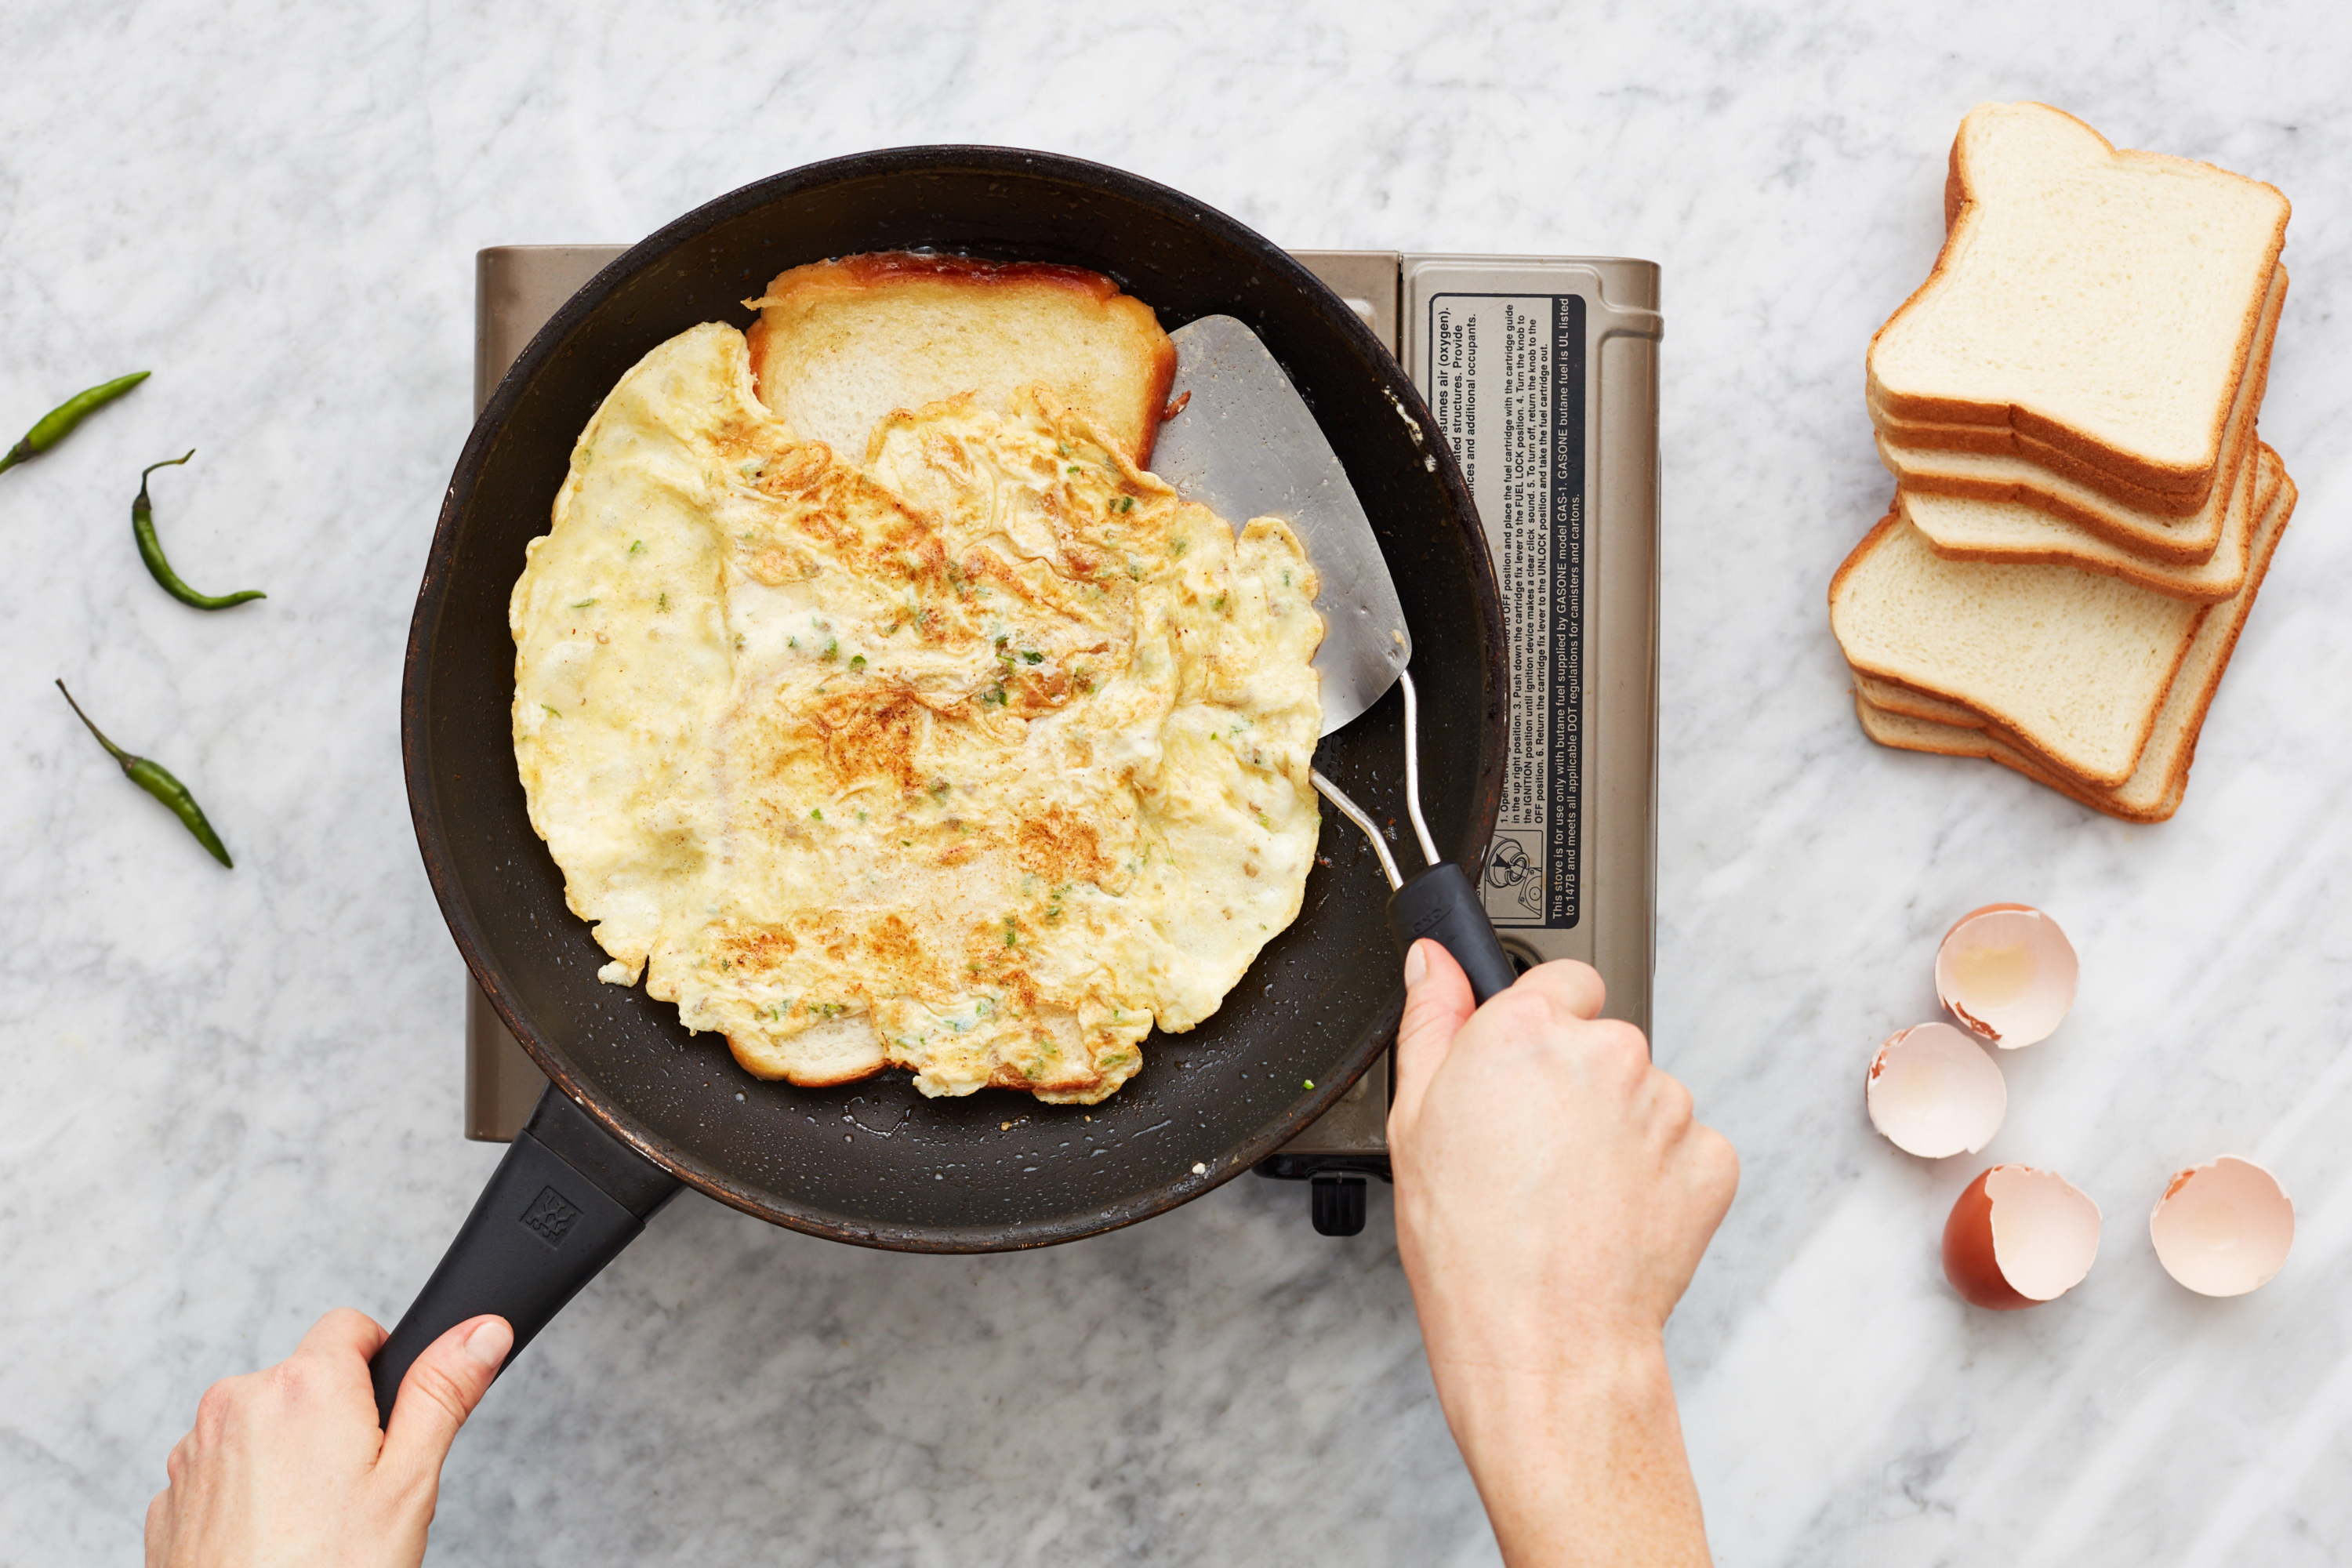 I Tried The Viral Indian Bread Omelet Technique From Reddit